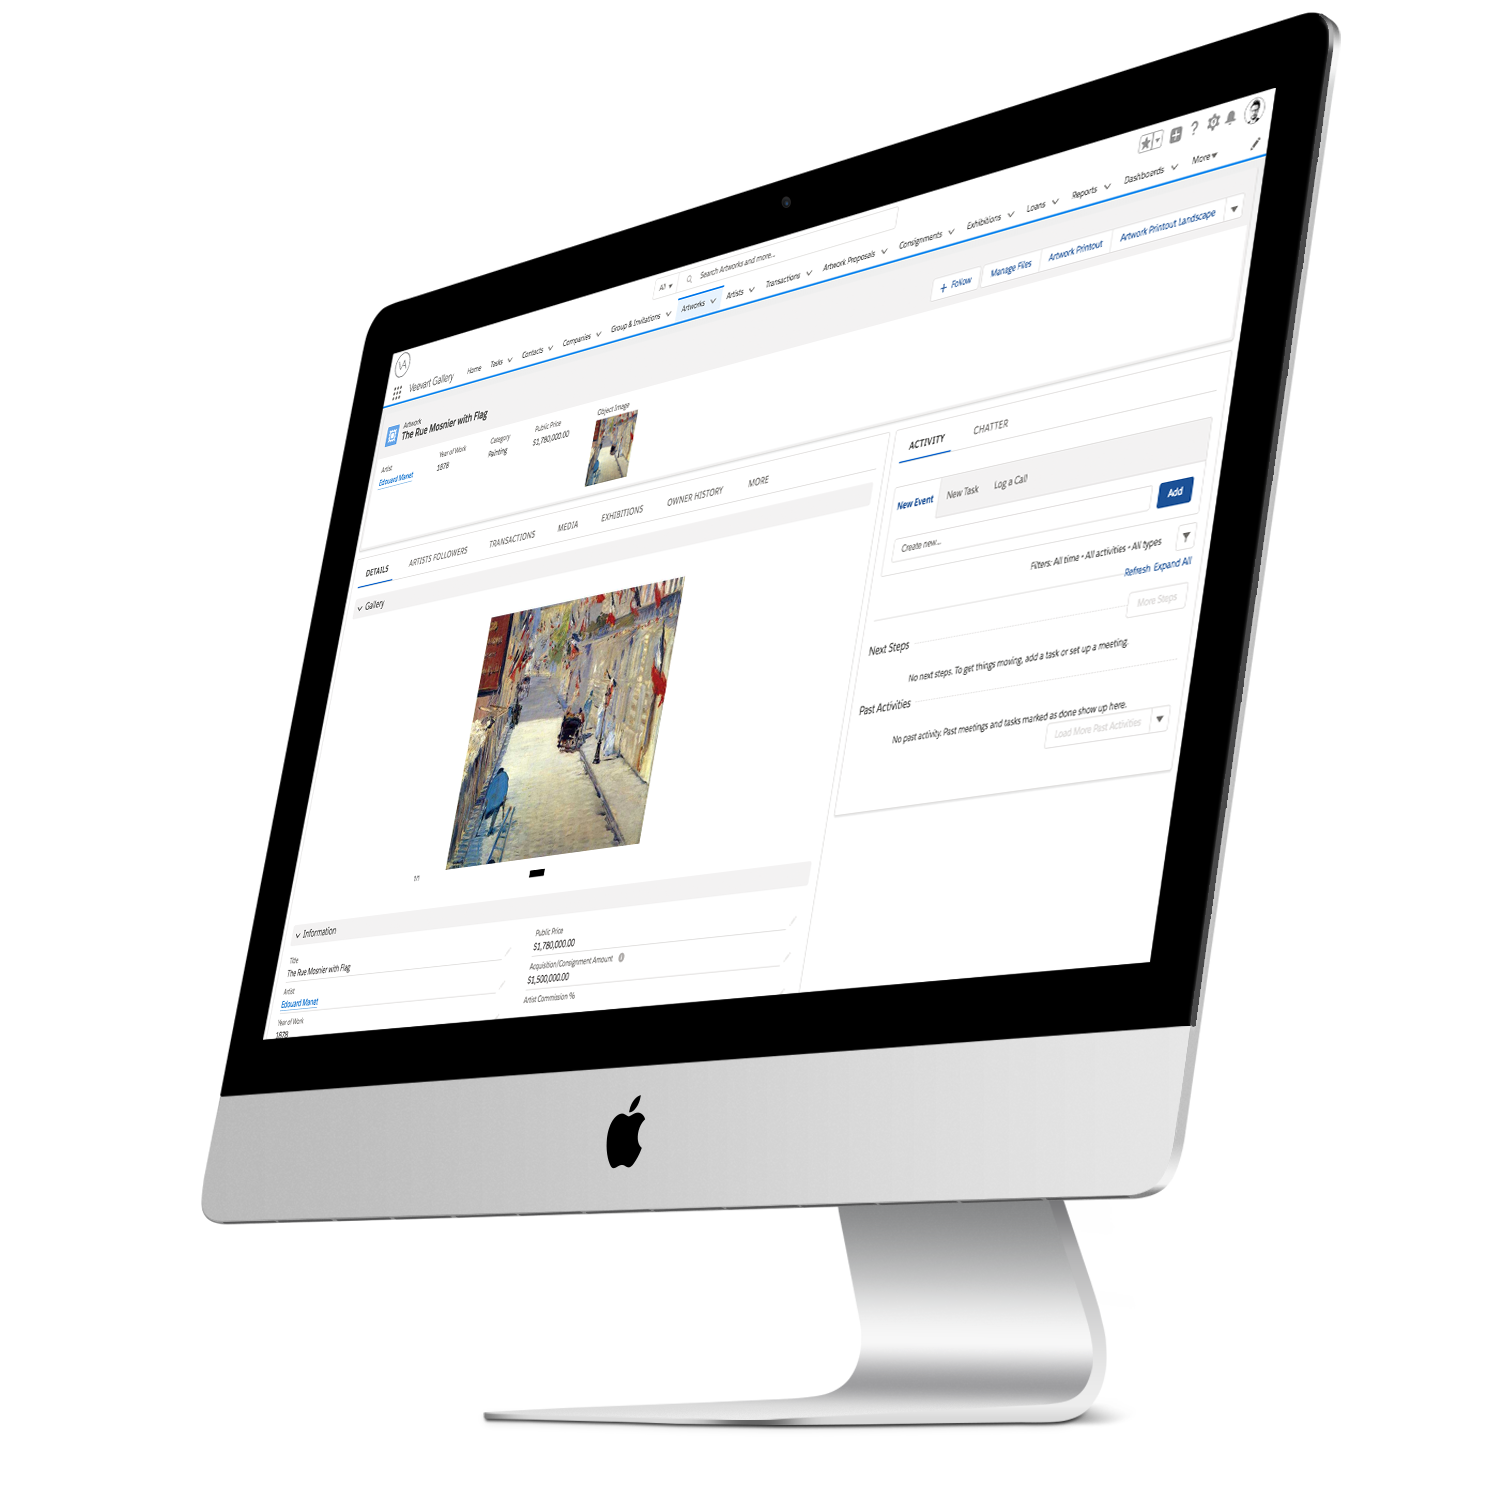 The Best Cloud Platform to Manage your Gallery - Have your contacts, your sales, your email, inventory, exhibition preparation, and more in a single app. Versatile, secure, and customizable, your Art Gallery is always with you